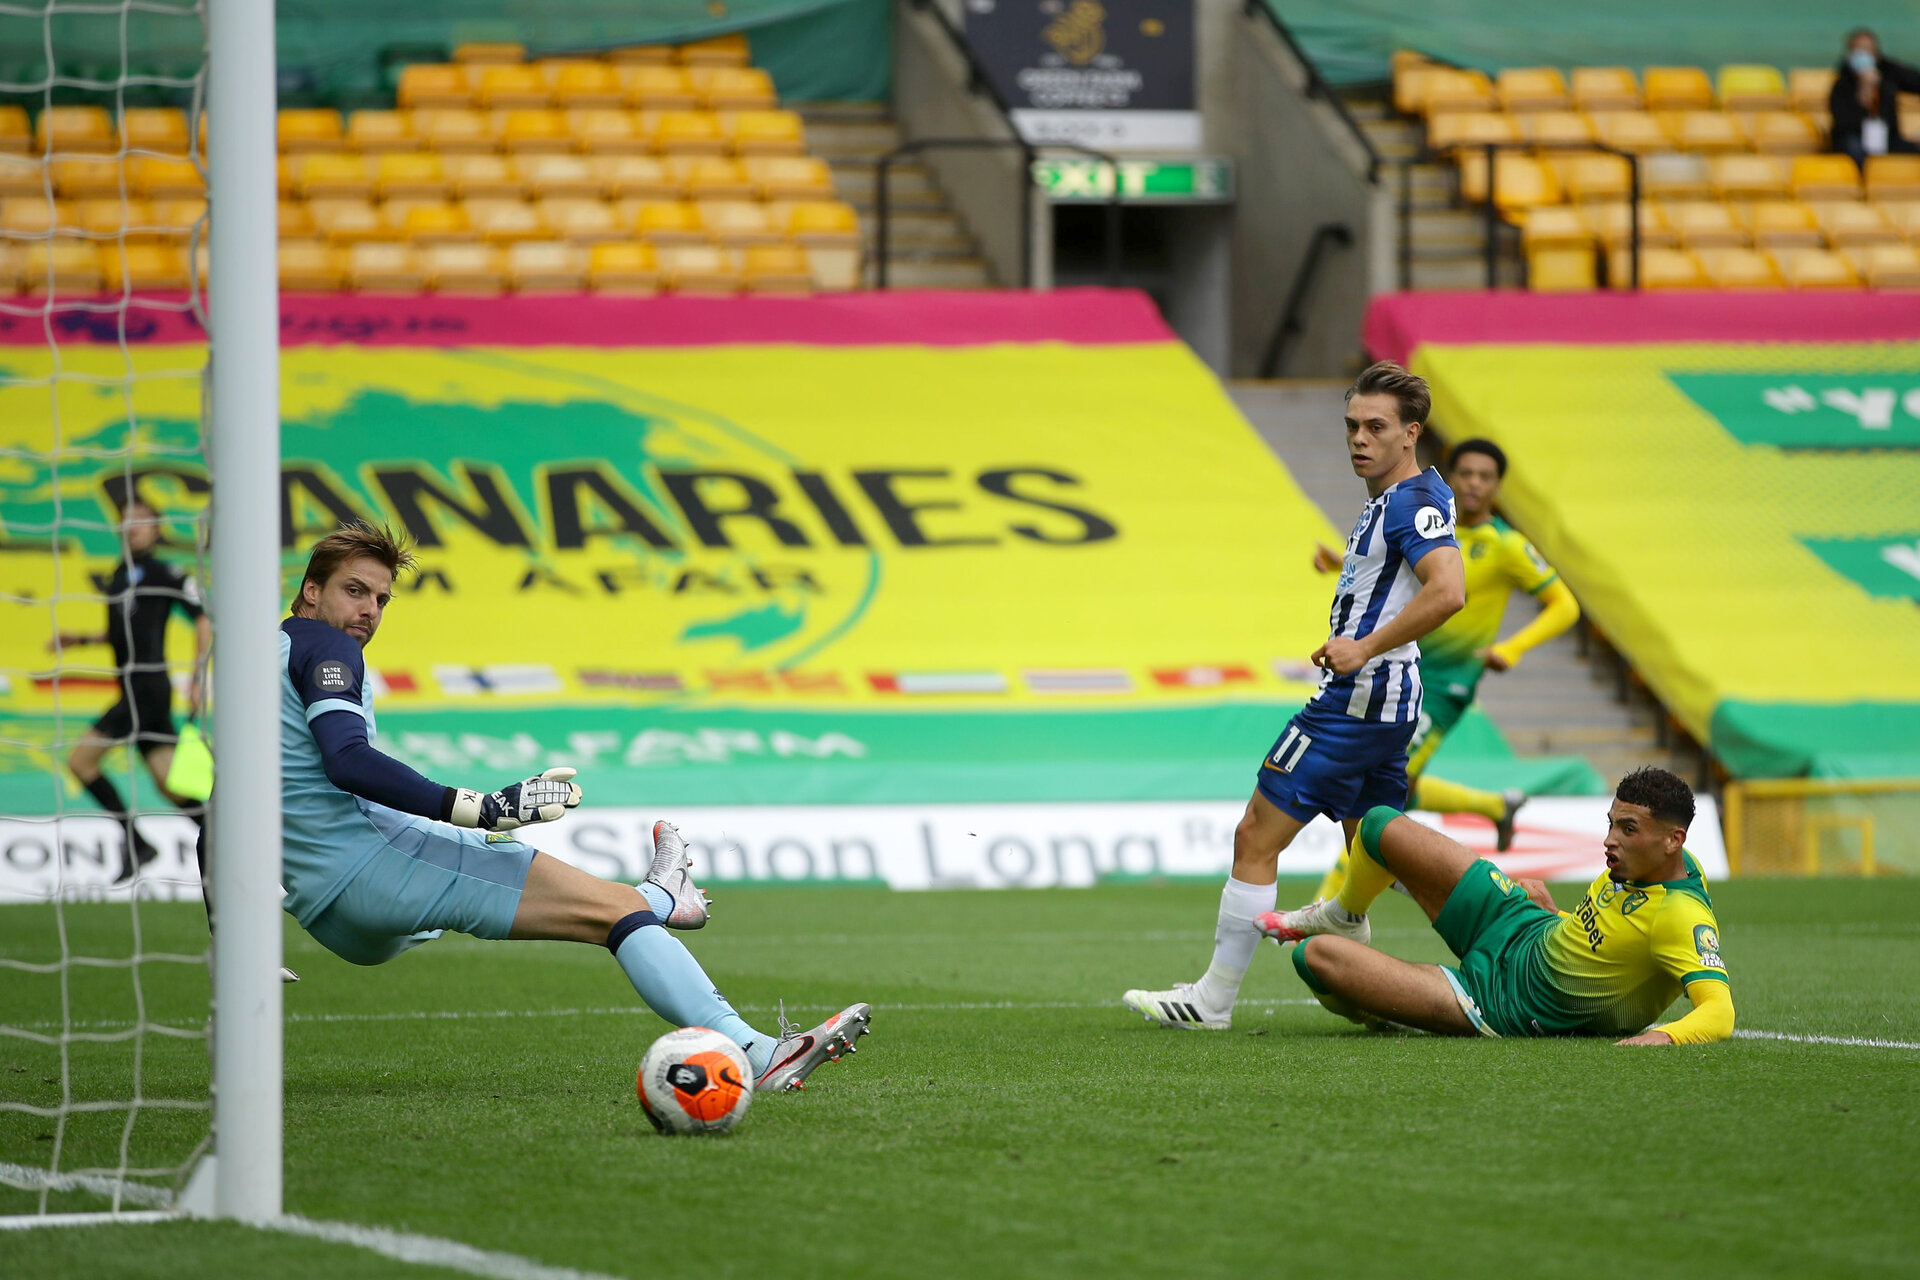 NORWICH, ENGLAND - JULY 04: Leondro Trossard of Brighton and Hove Albion scores his team's first goal past Tim Krul of Norwich City during the Premier League match between Norwich City and Brighton & Hove Albion at Carrow Road on July 04, 2020 in Norwich, England. Football Stadiums around Europe remain empty due to the Coronavirus Pandemic as Government social distancing laws prohibit fans inside venues resulting in all fixtures being played behind closed doors. (Photo by Richard Heathcote/Getty Images)